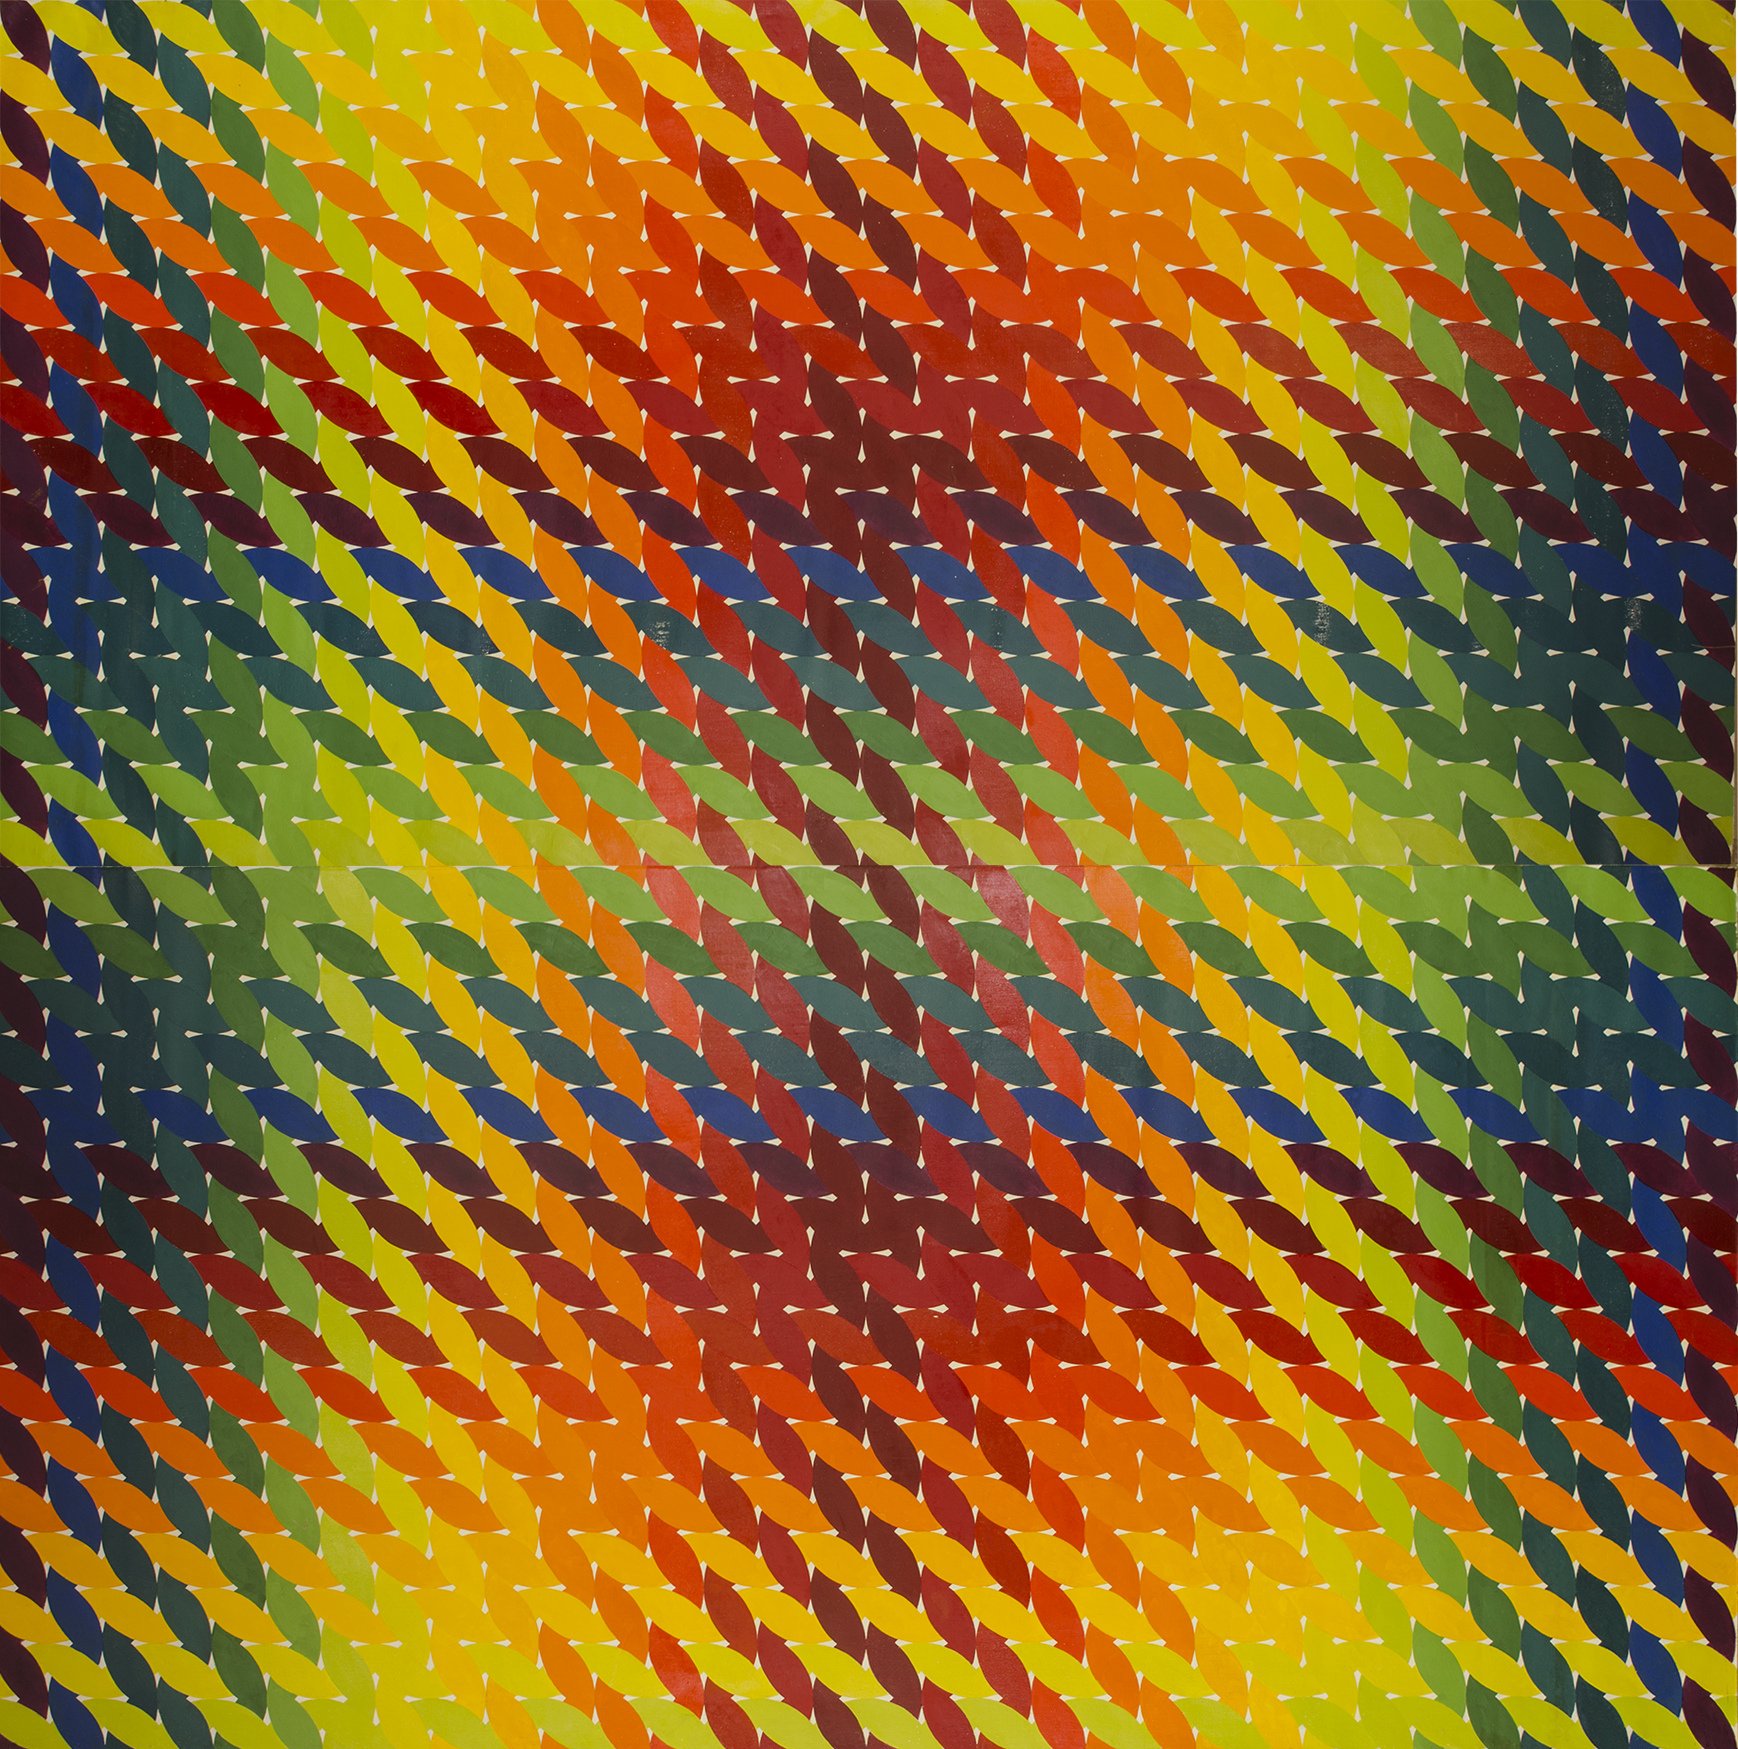 "WEAVE room 1972-1975©--CENTER PANEL 96"" x 96"" [243.84 cm x 243.84 cm]"